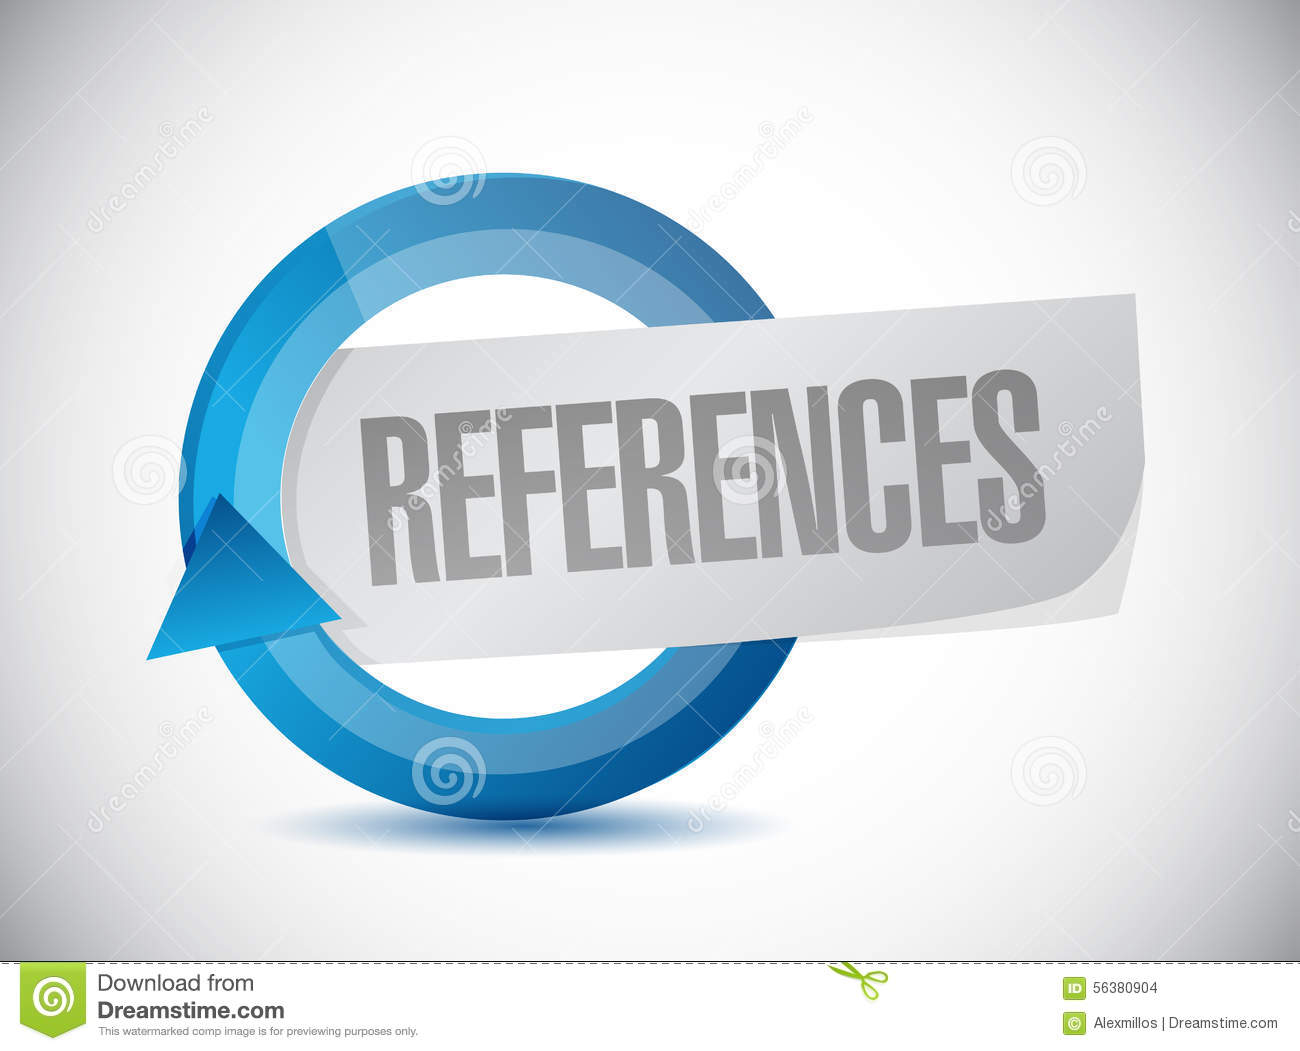 References Cycle Sign Concept Stock Illustration  Image. 3 Drawer Lateral File Cabinets. Foods That Enhance Fertility Cane Law Firm. Wedding Planning Directory Car Insurance Lady. Cosmetology School Melbourne Fl. Partially Erupted Wisdom Tooth Extraction. Salesforce Google Apps Integration. Medicaid Fraud In Texas Dymo Lable Writer 400. Graduate Programs In Religious Studies